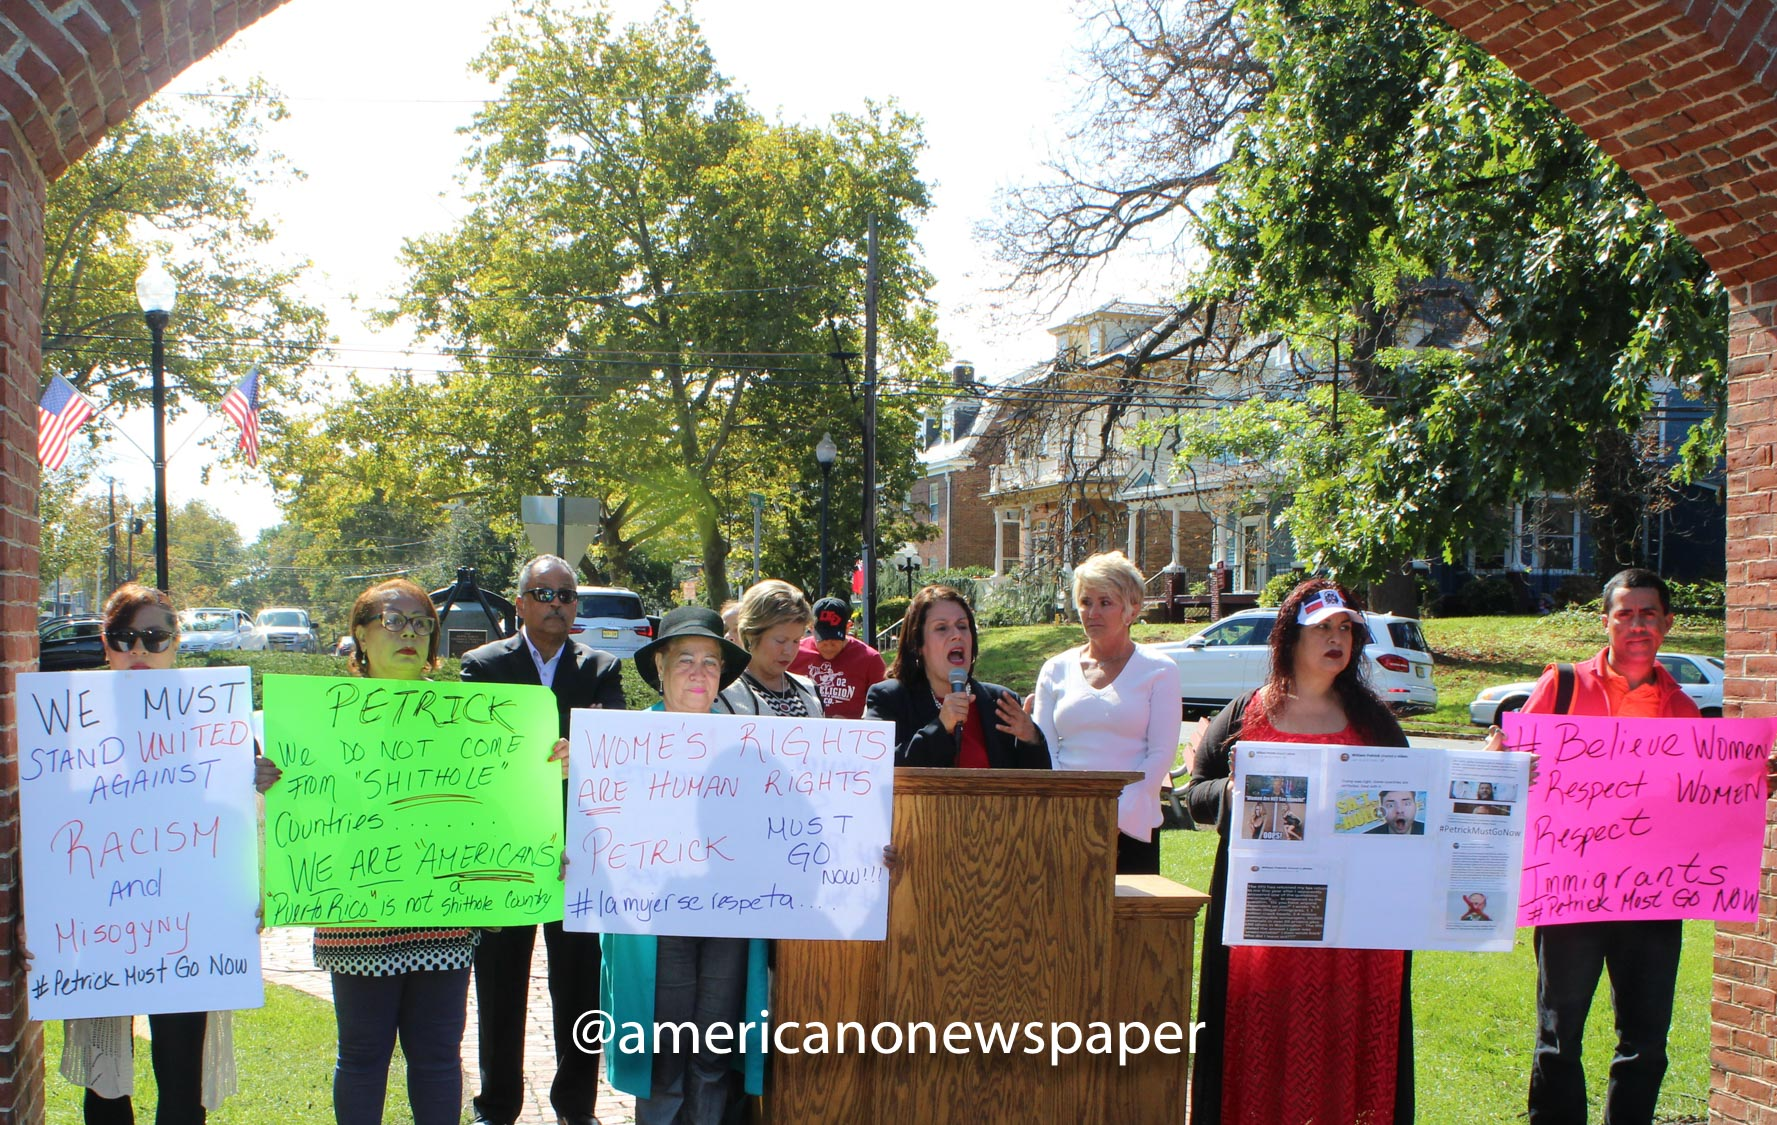 Protest #1 in front of Perth Amboy City Hall, October 3